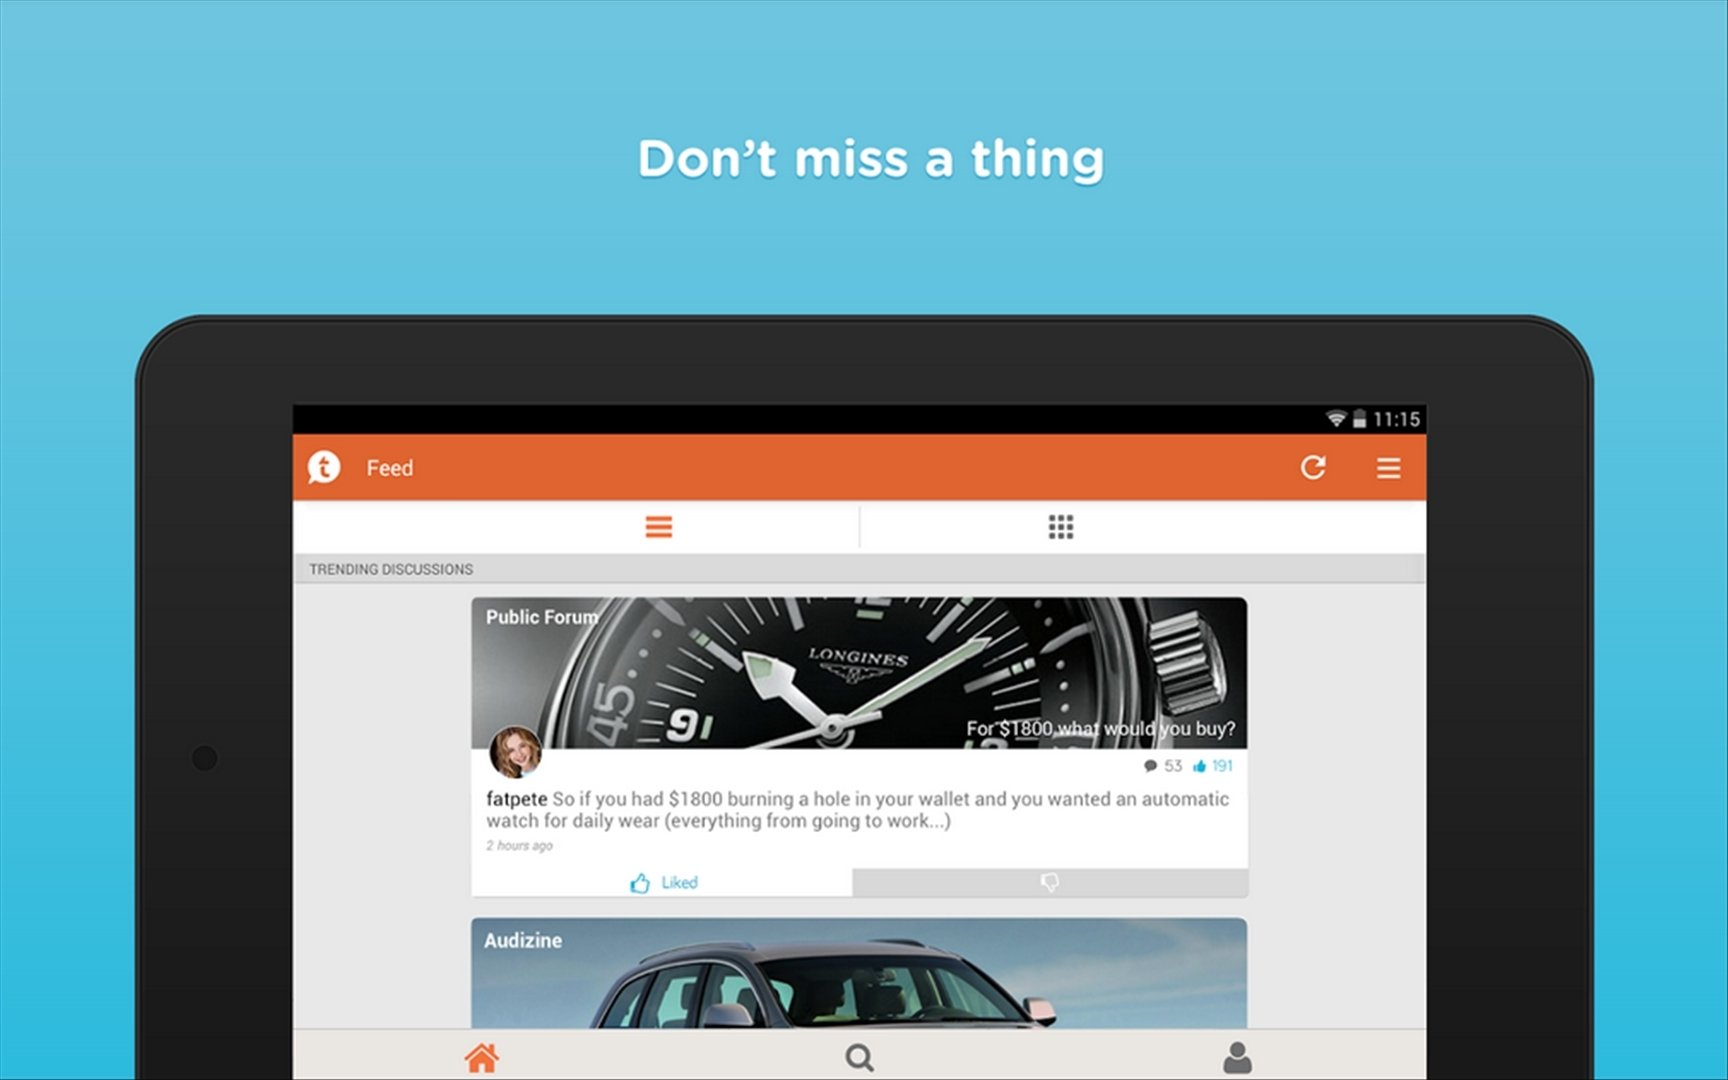 Tapatalk Android image 6